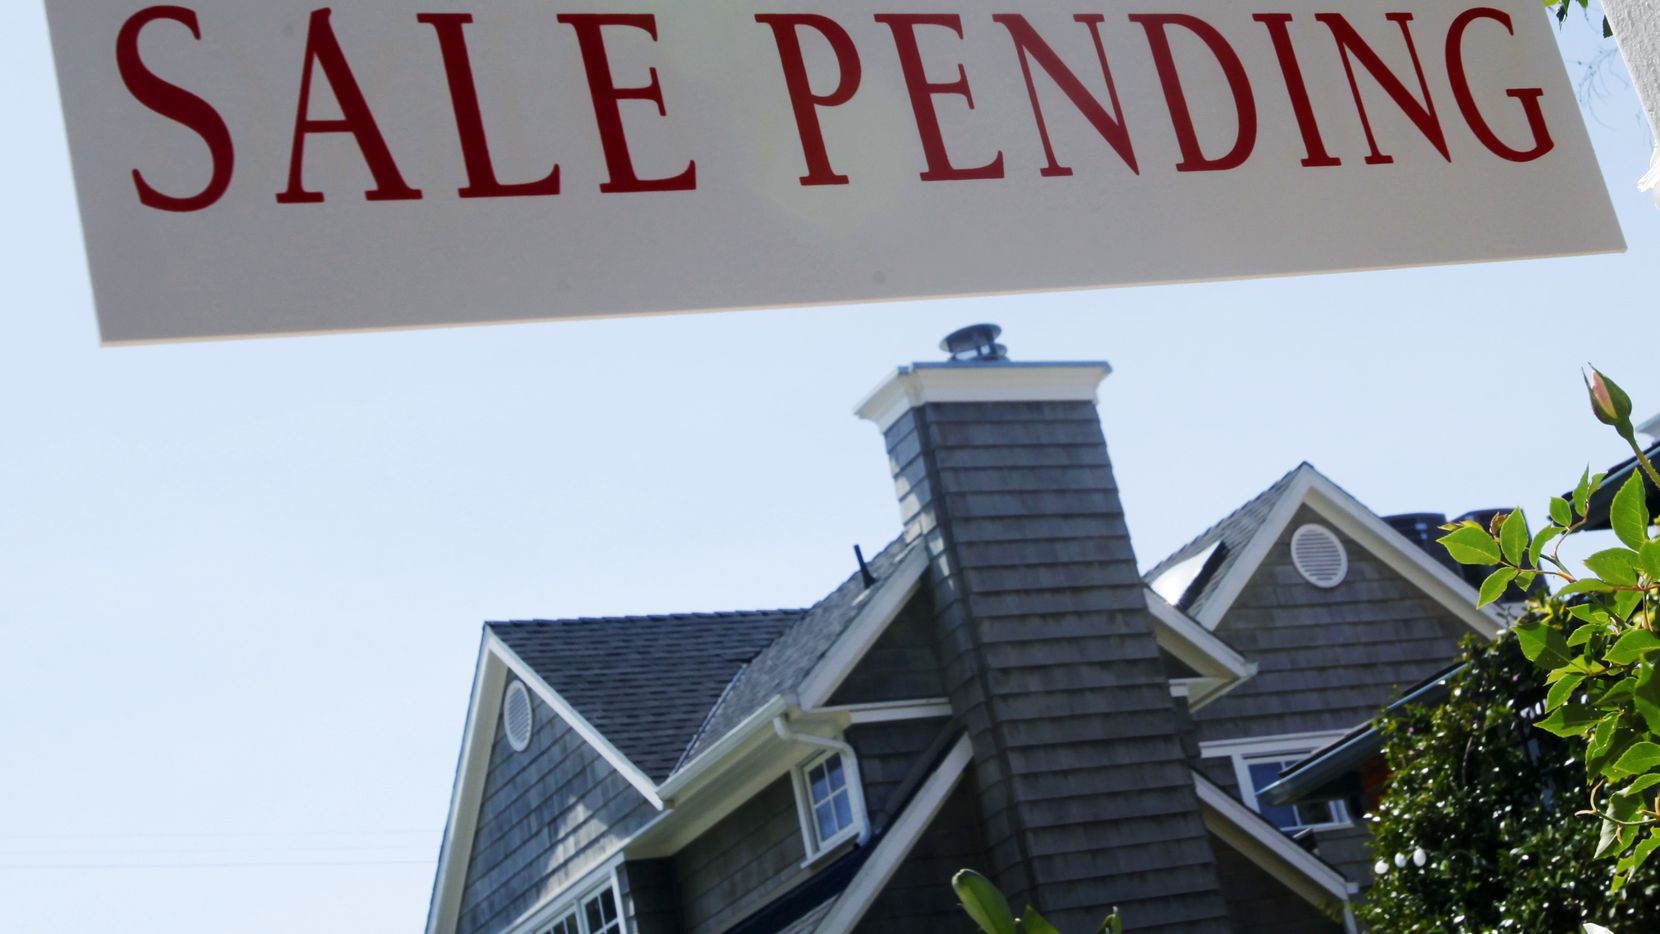 Home prices were up 20 percent or more in the first quarter in a half-dozen Dallas-area residential areas.